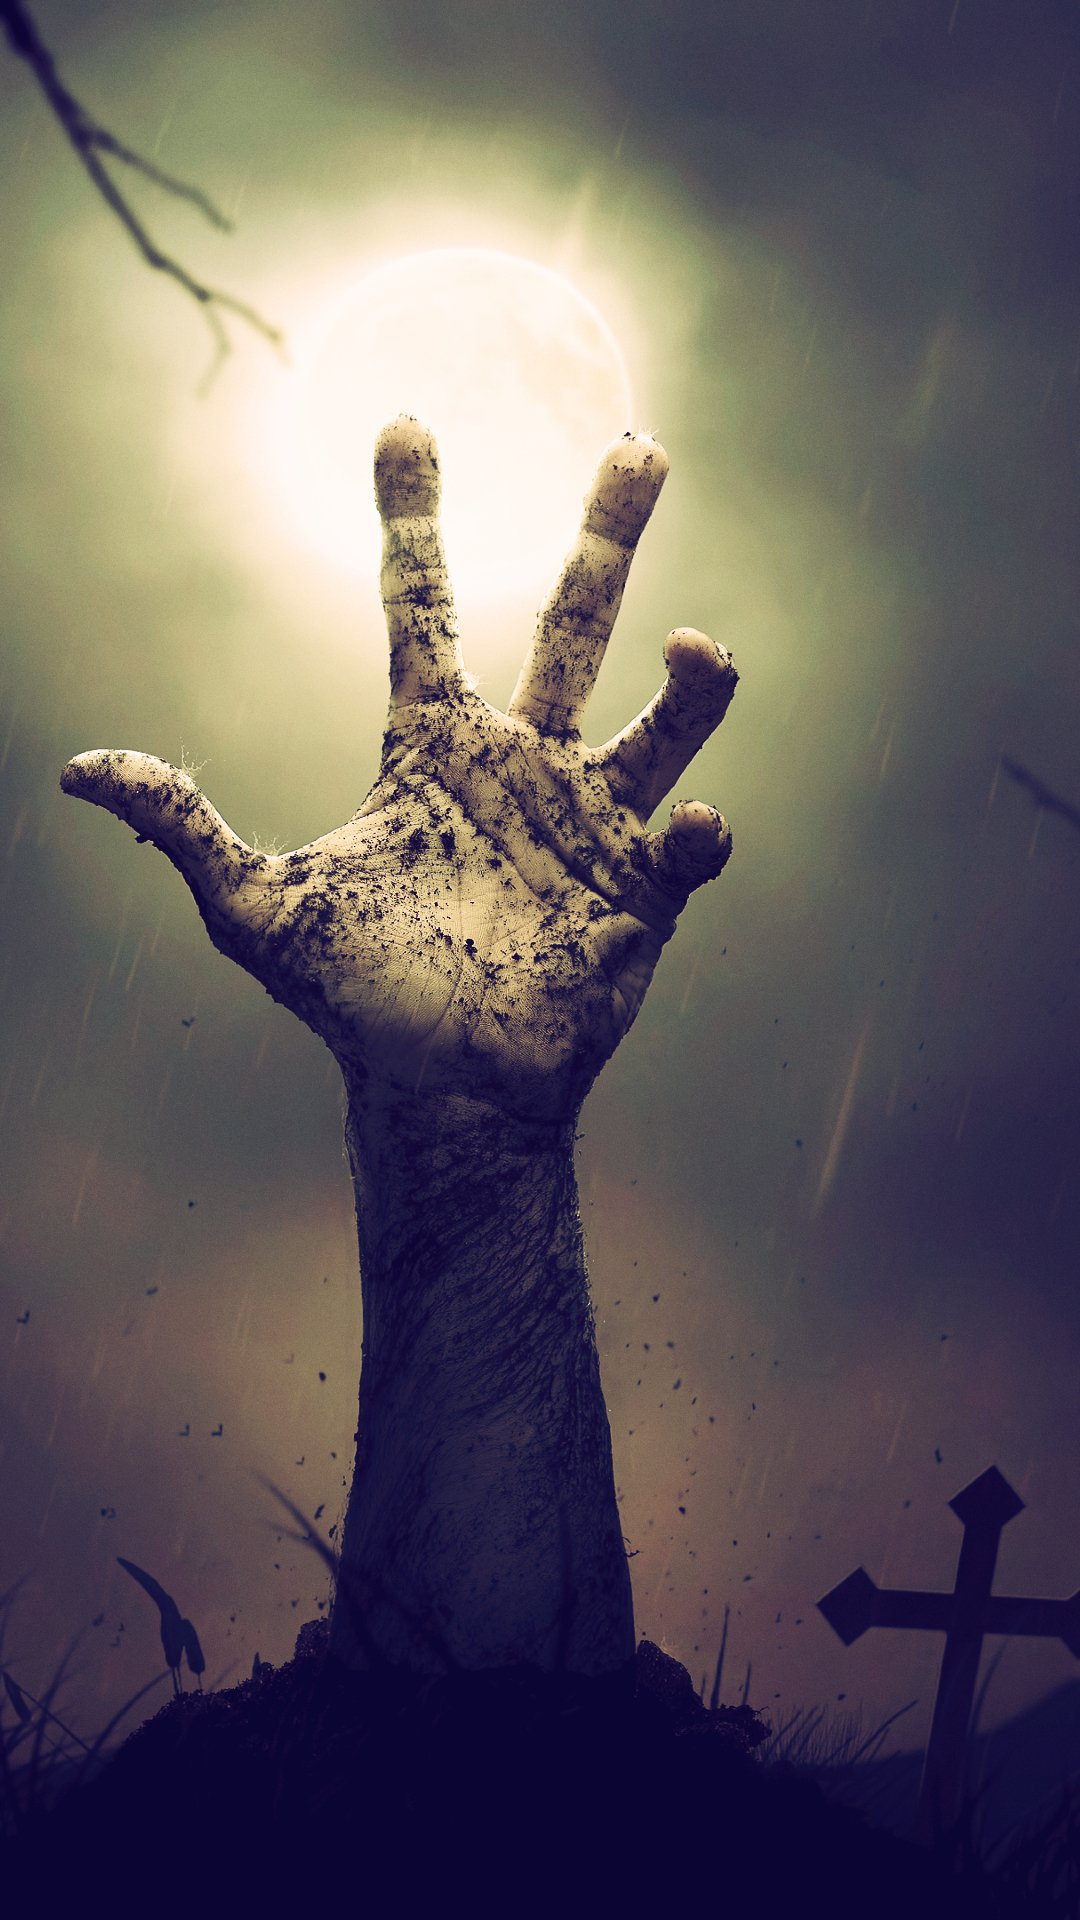 Zombie, Hand From The Grave Image